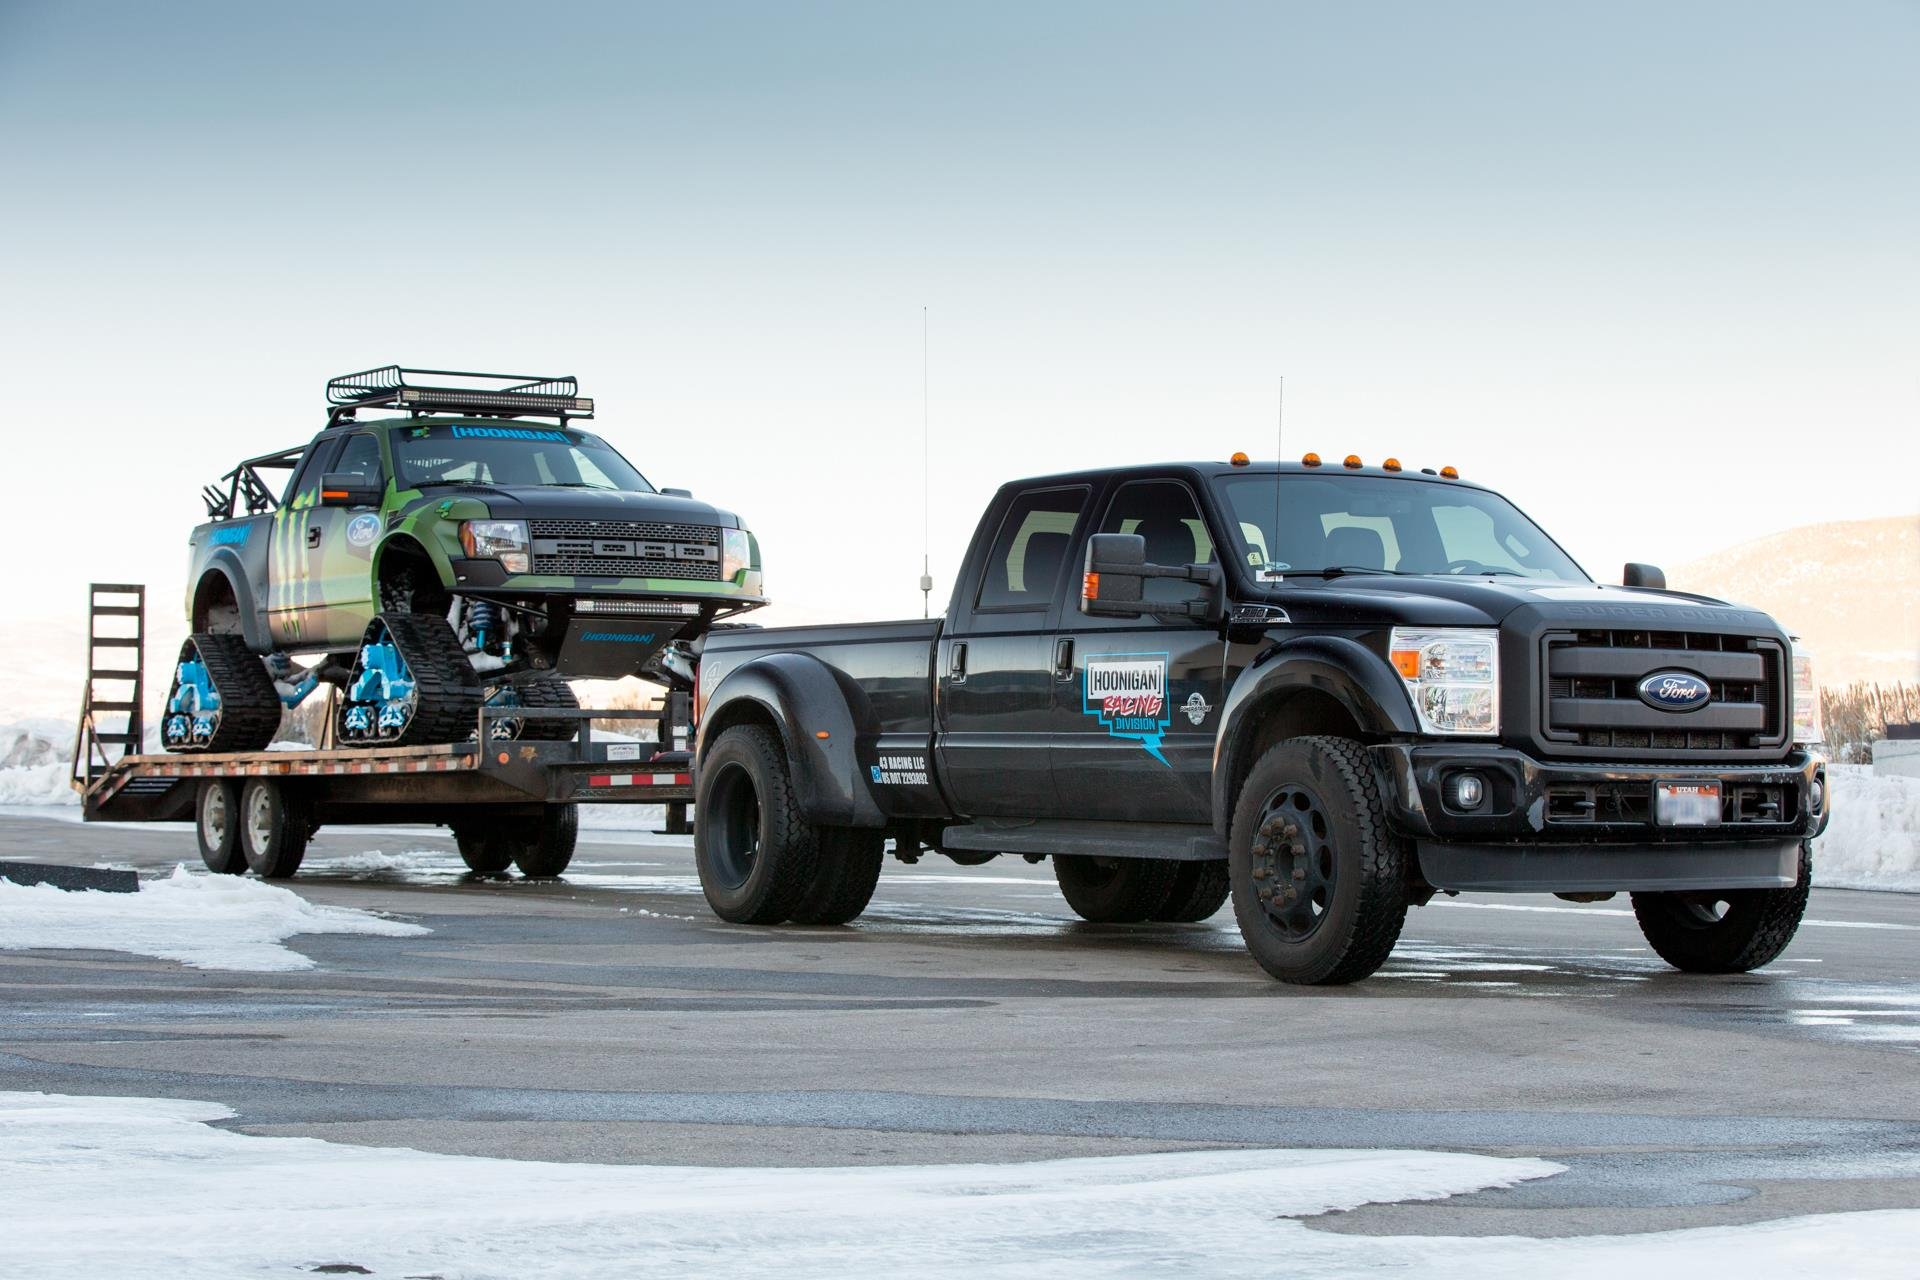 2014 Ford F 150 Raptor TRAX 4x4 Winter Snow Pickup Tuning R Wallpaper